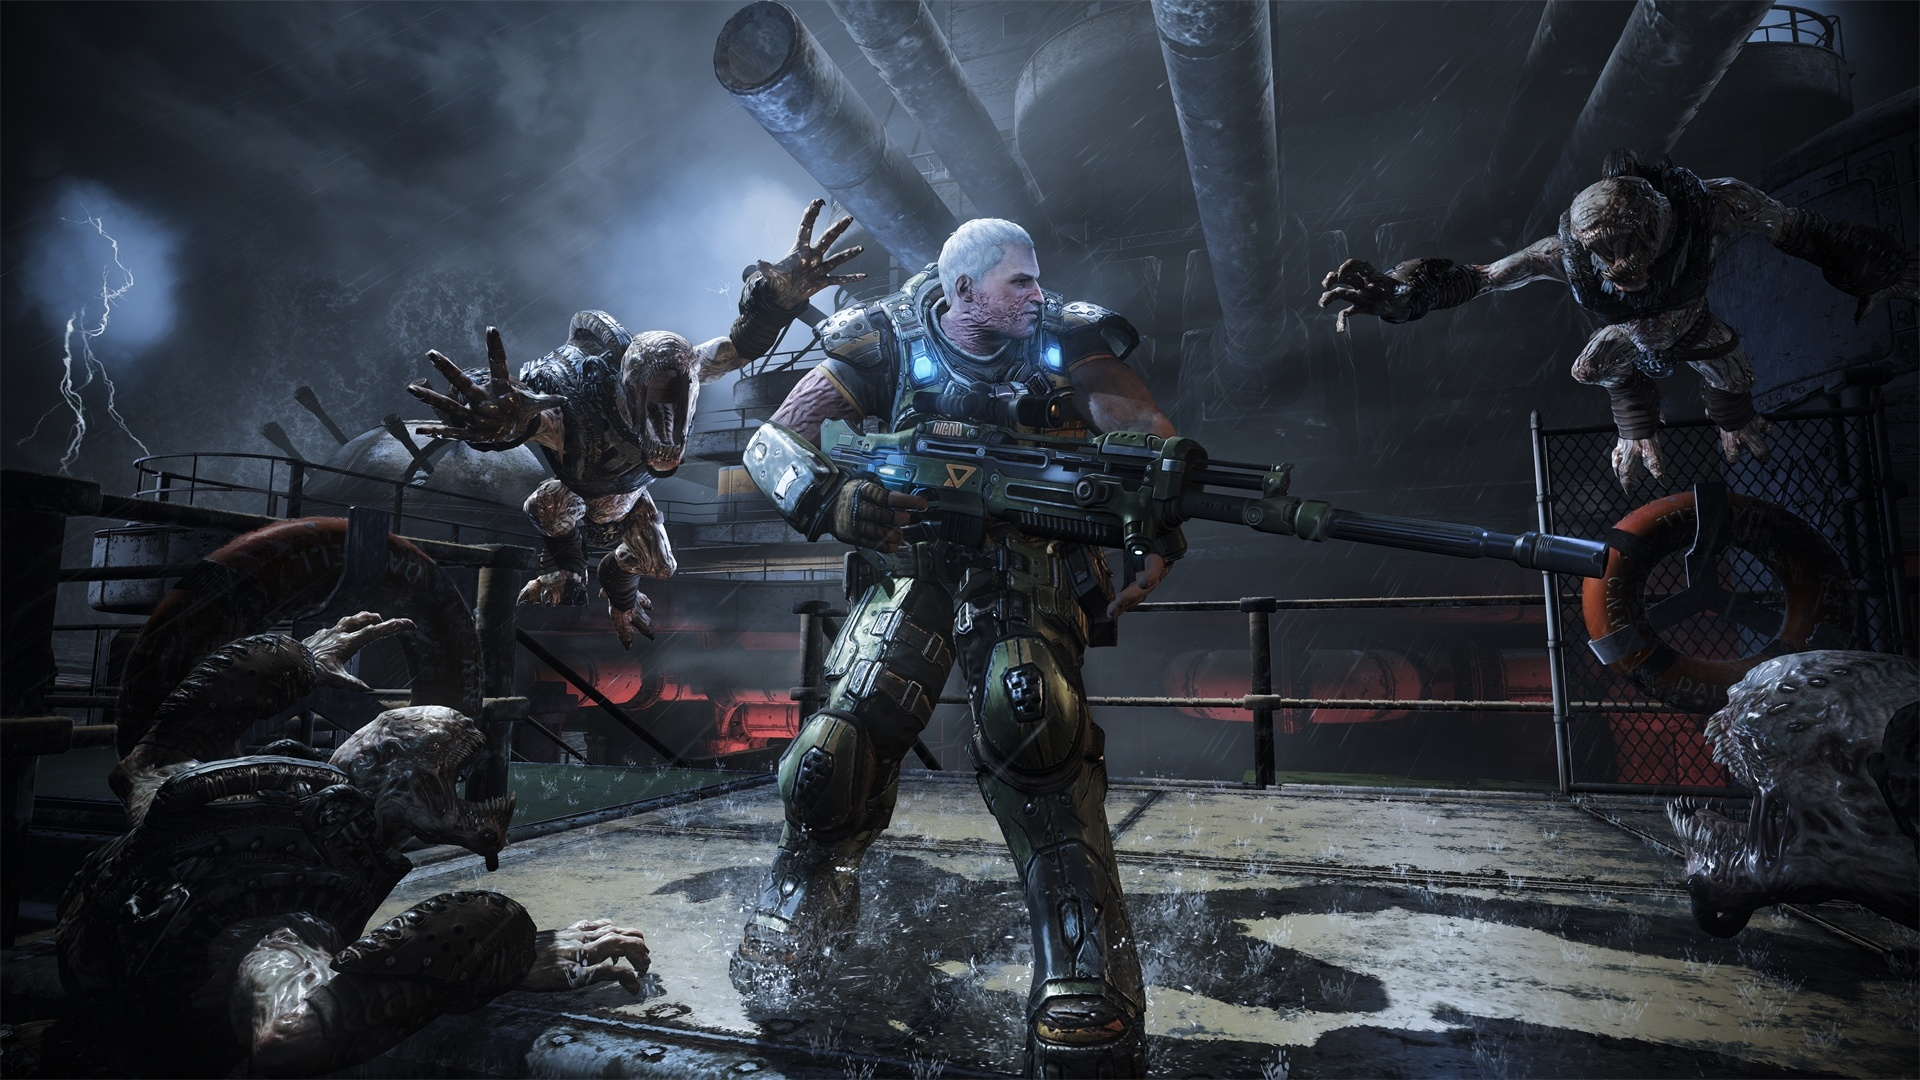 gears-of-war-4-review-screenshot-3